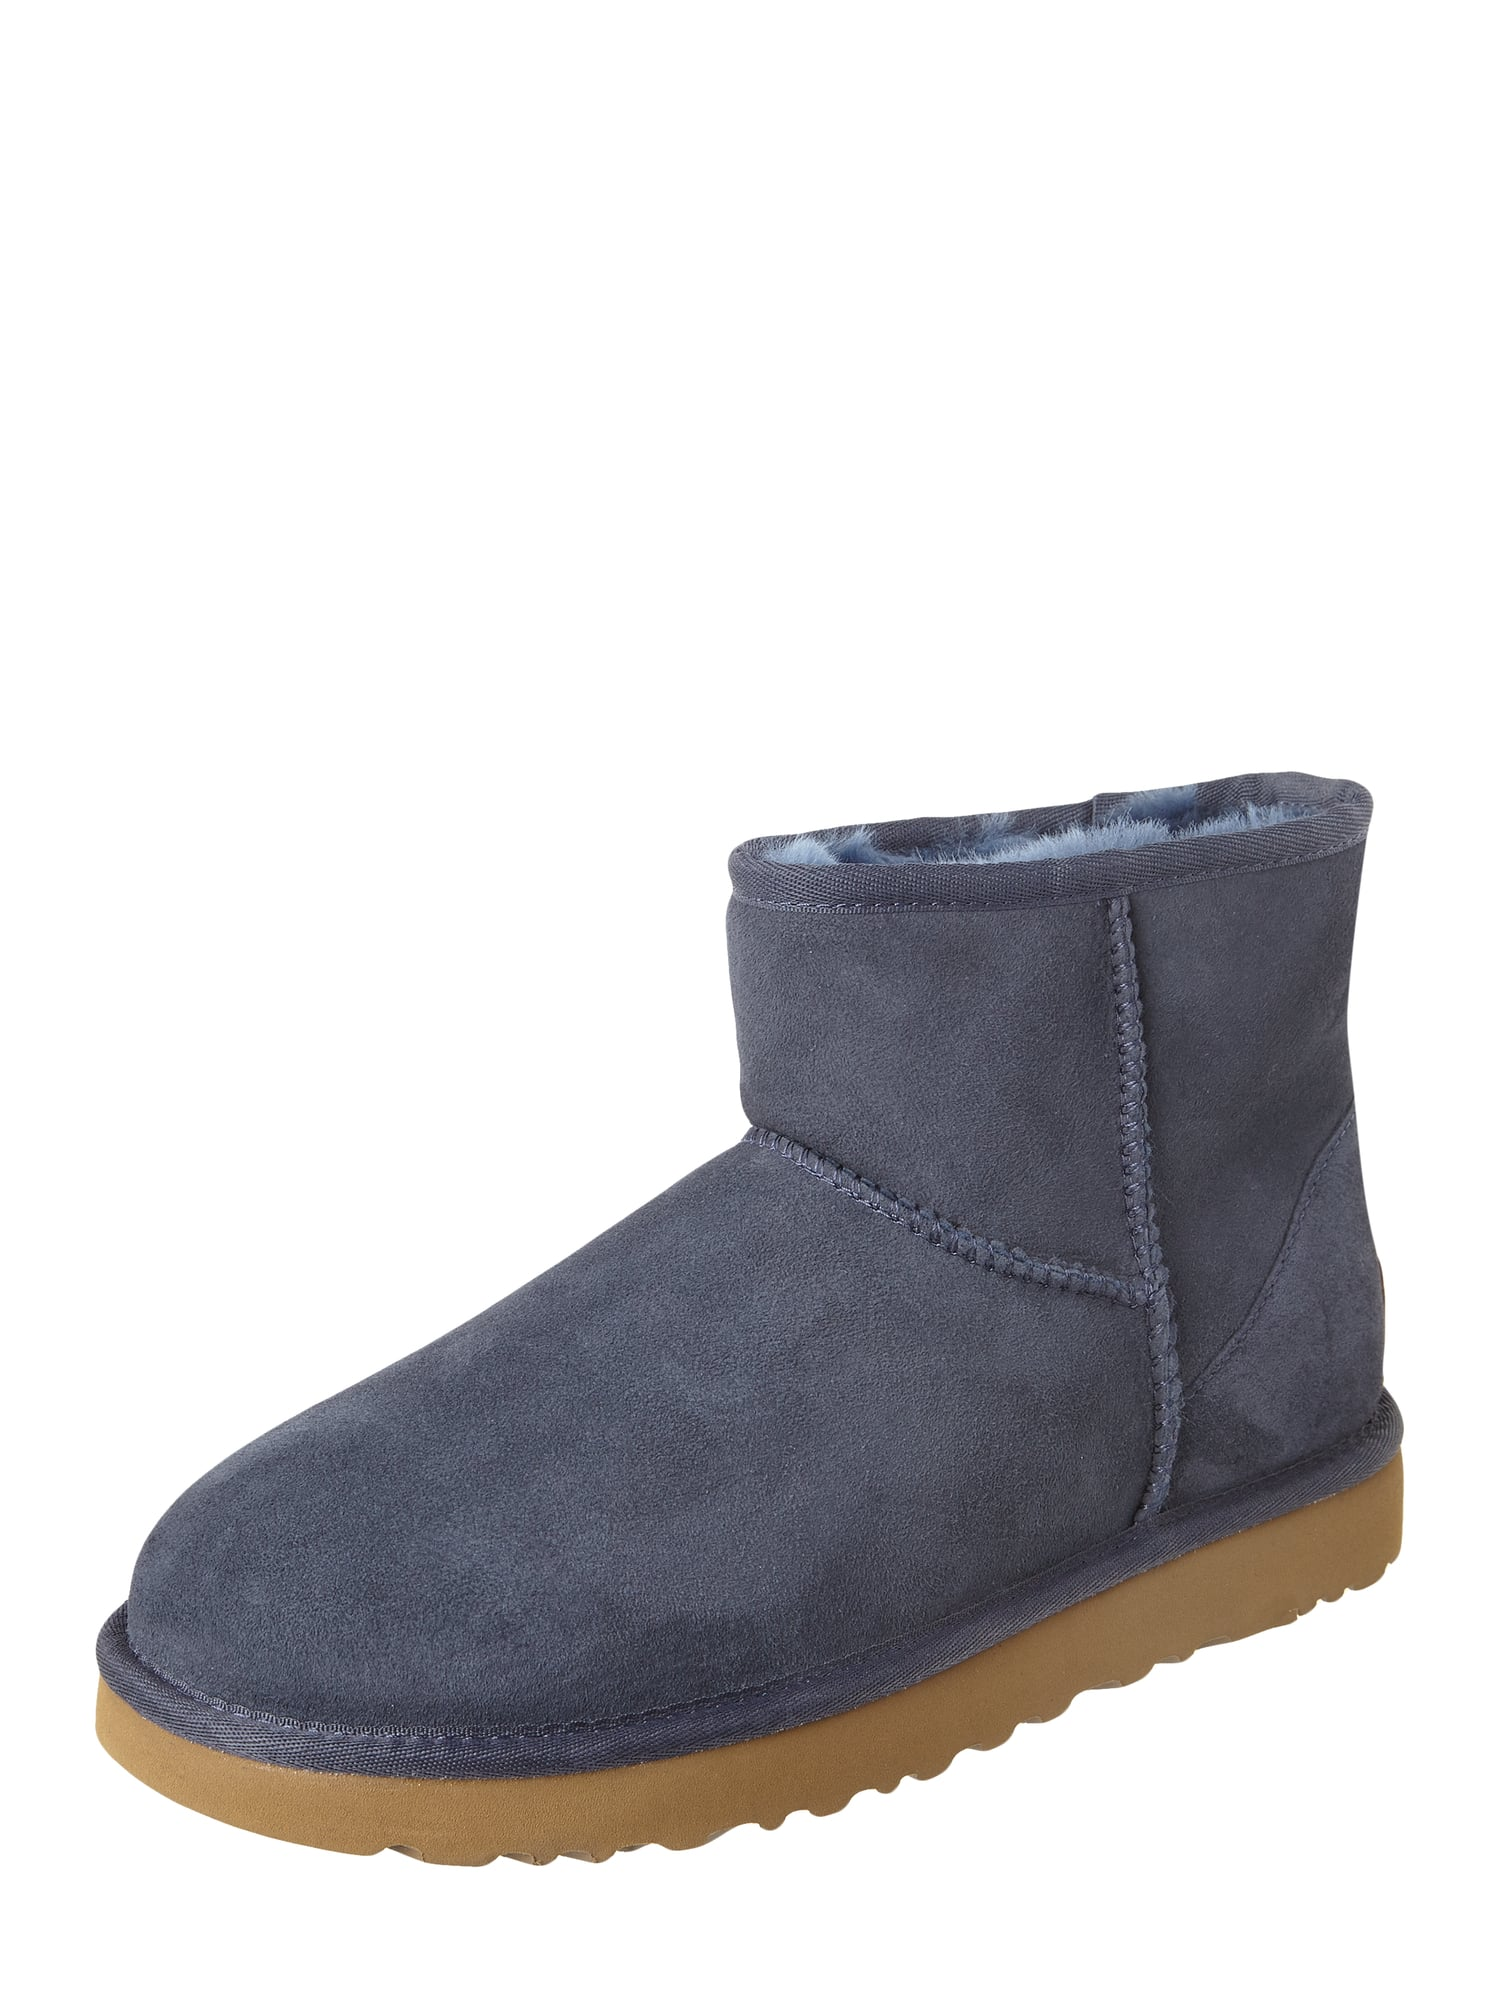 ugg lederboots 39 classic mini ii 39 mit lammfellfutter in blau t rkis online kaufen 9832883 p c. Black Bedroom Furniture Sets. Home Design Ideas